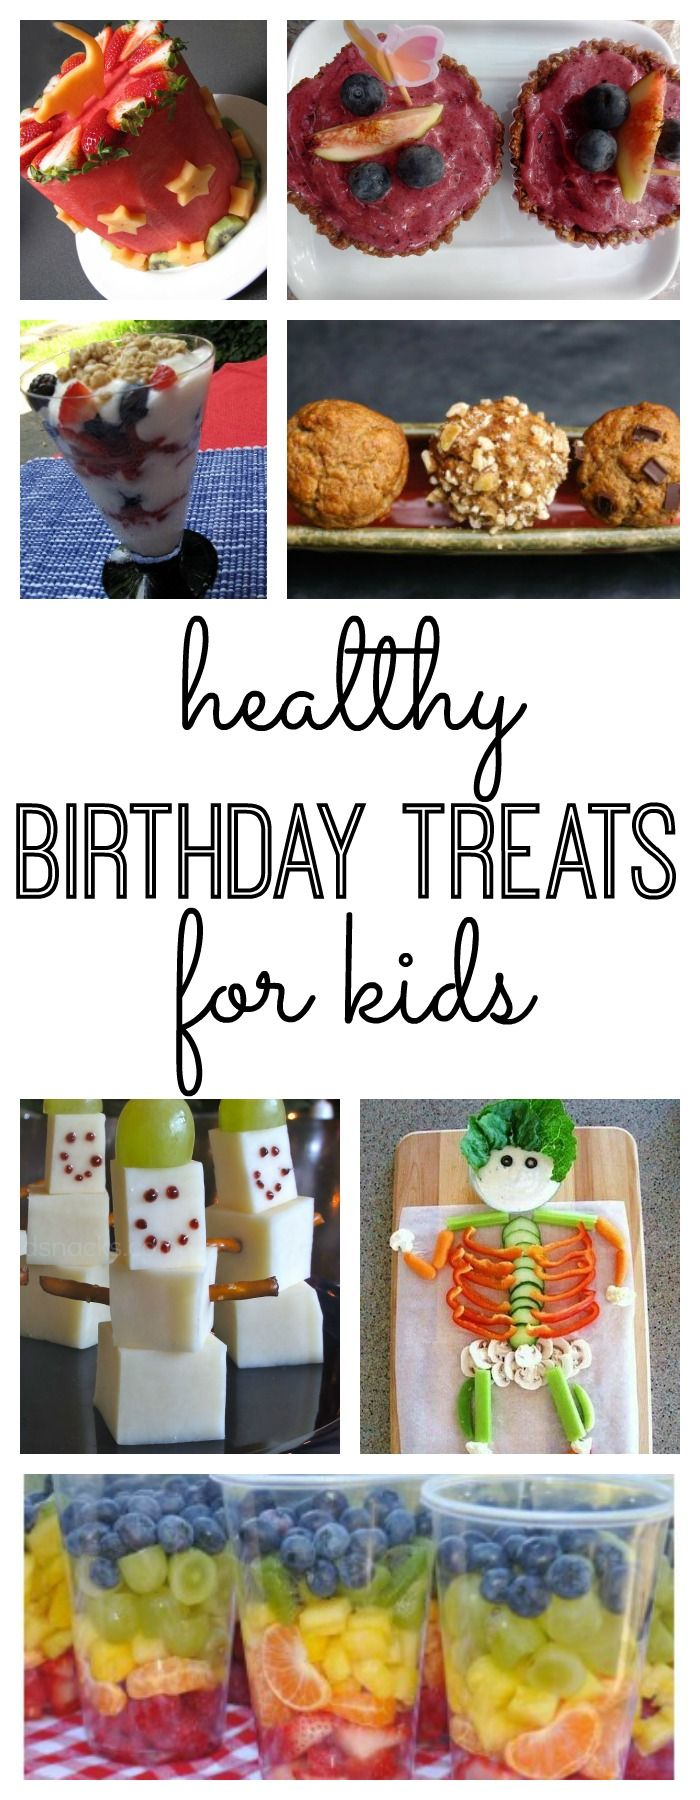 Looking for healthy birthday treats for yourself or your kids? Here are a few healthy birthday recipes to consider.